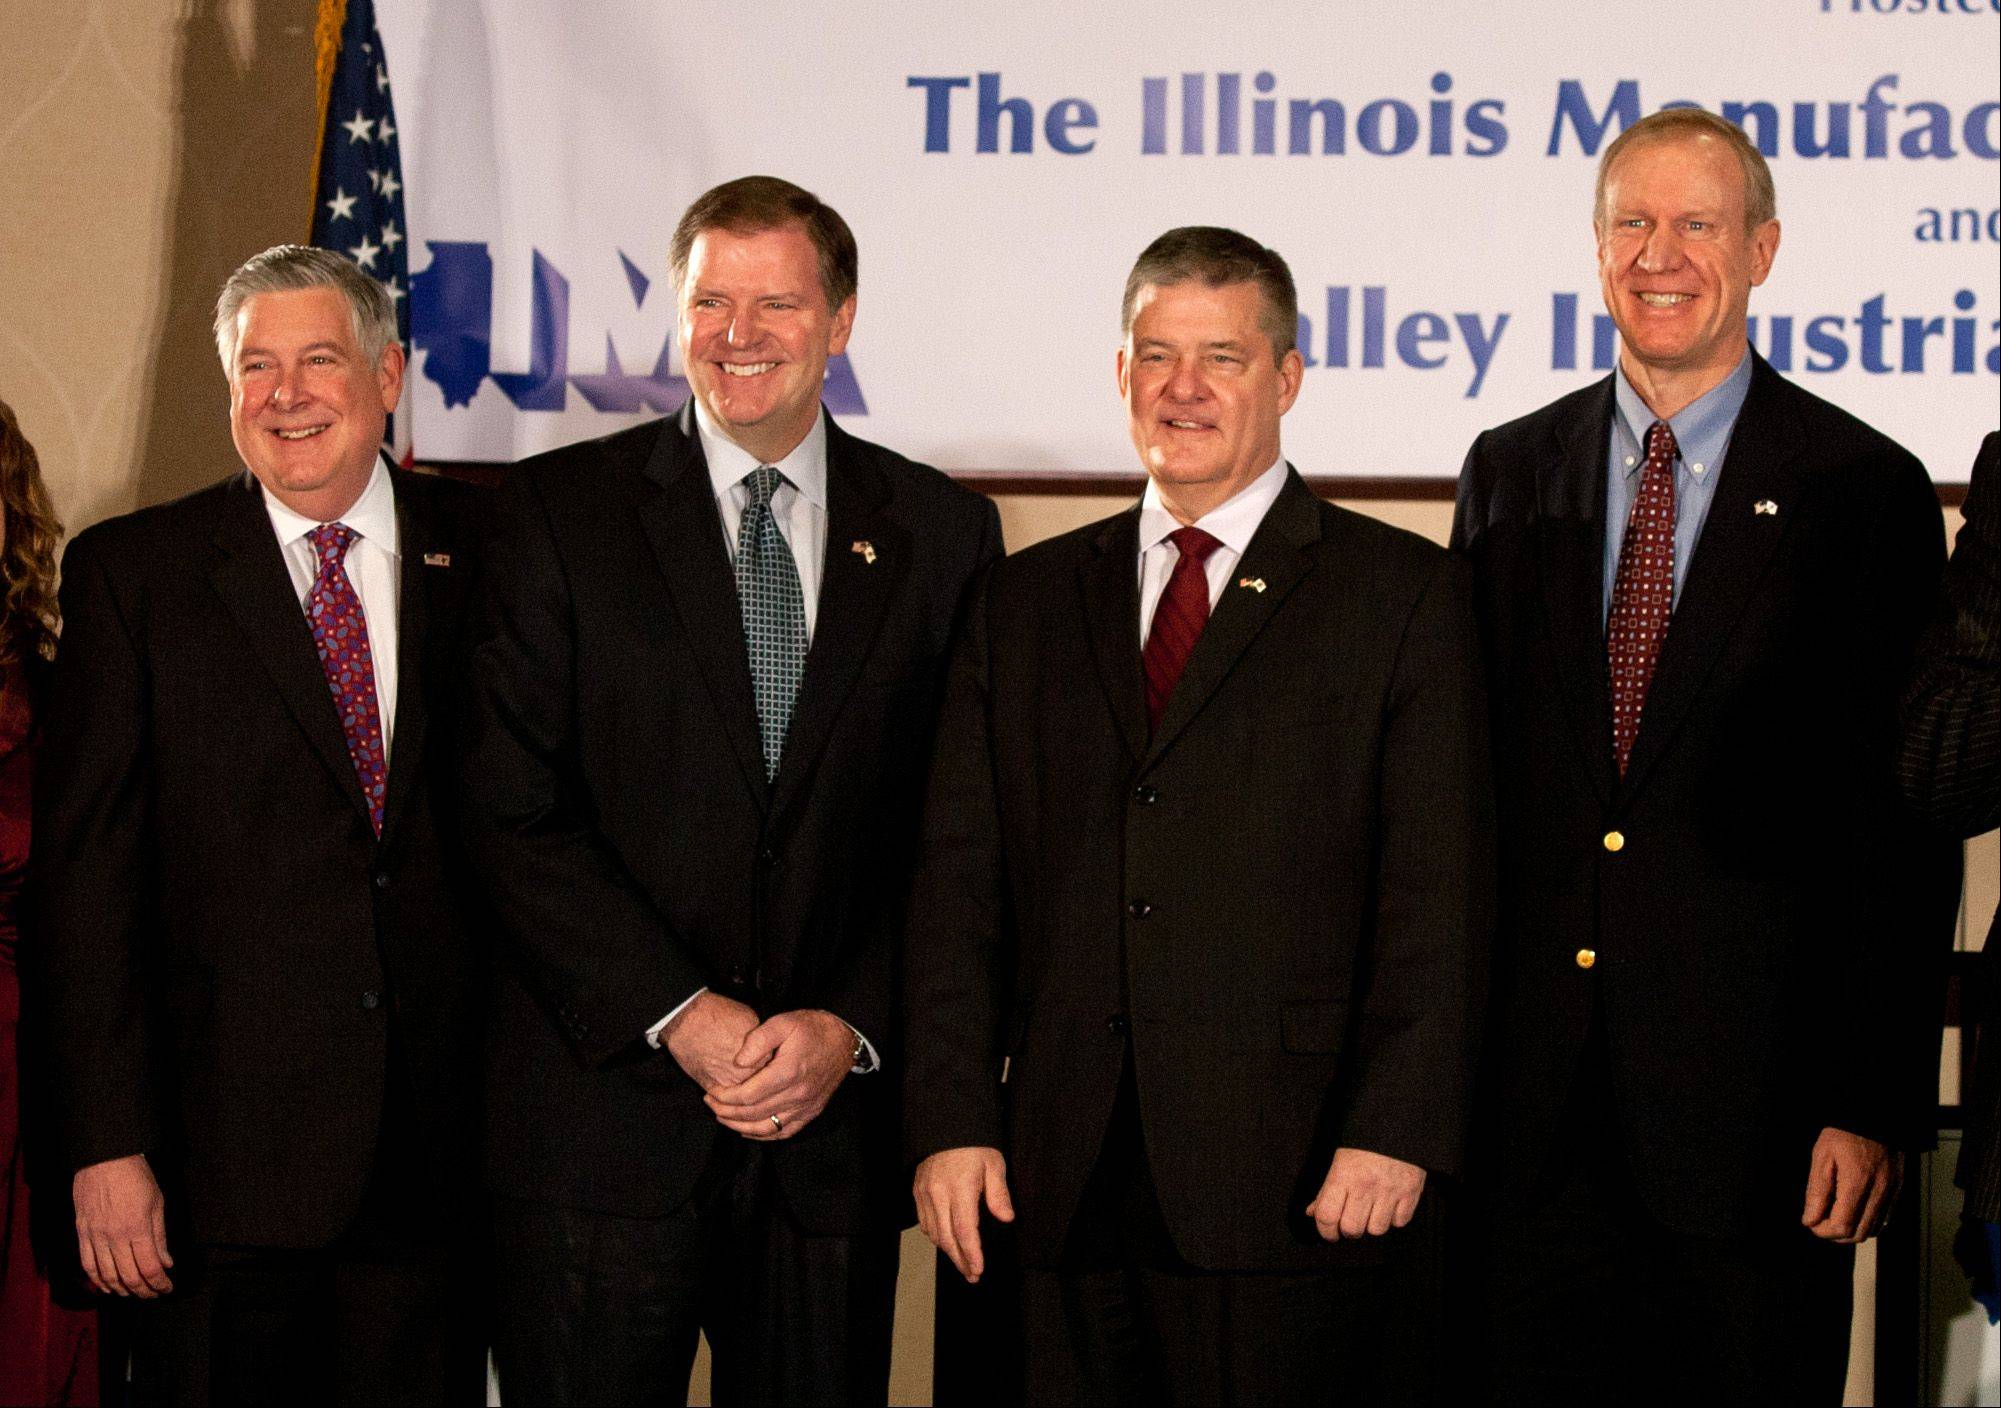 State Sen. Kirk Dillard, state Sen. Bill Brady, state Treasurer Dan Rutherford and businessman Bruce Rauner line up at a debate for the GOP candidates for governor in Naperville.